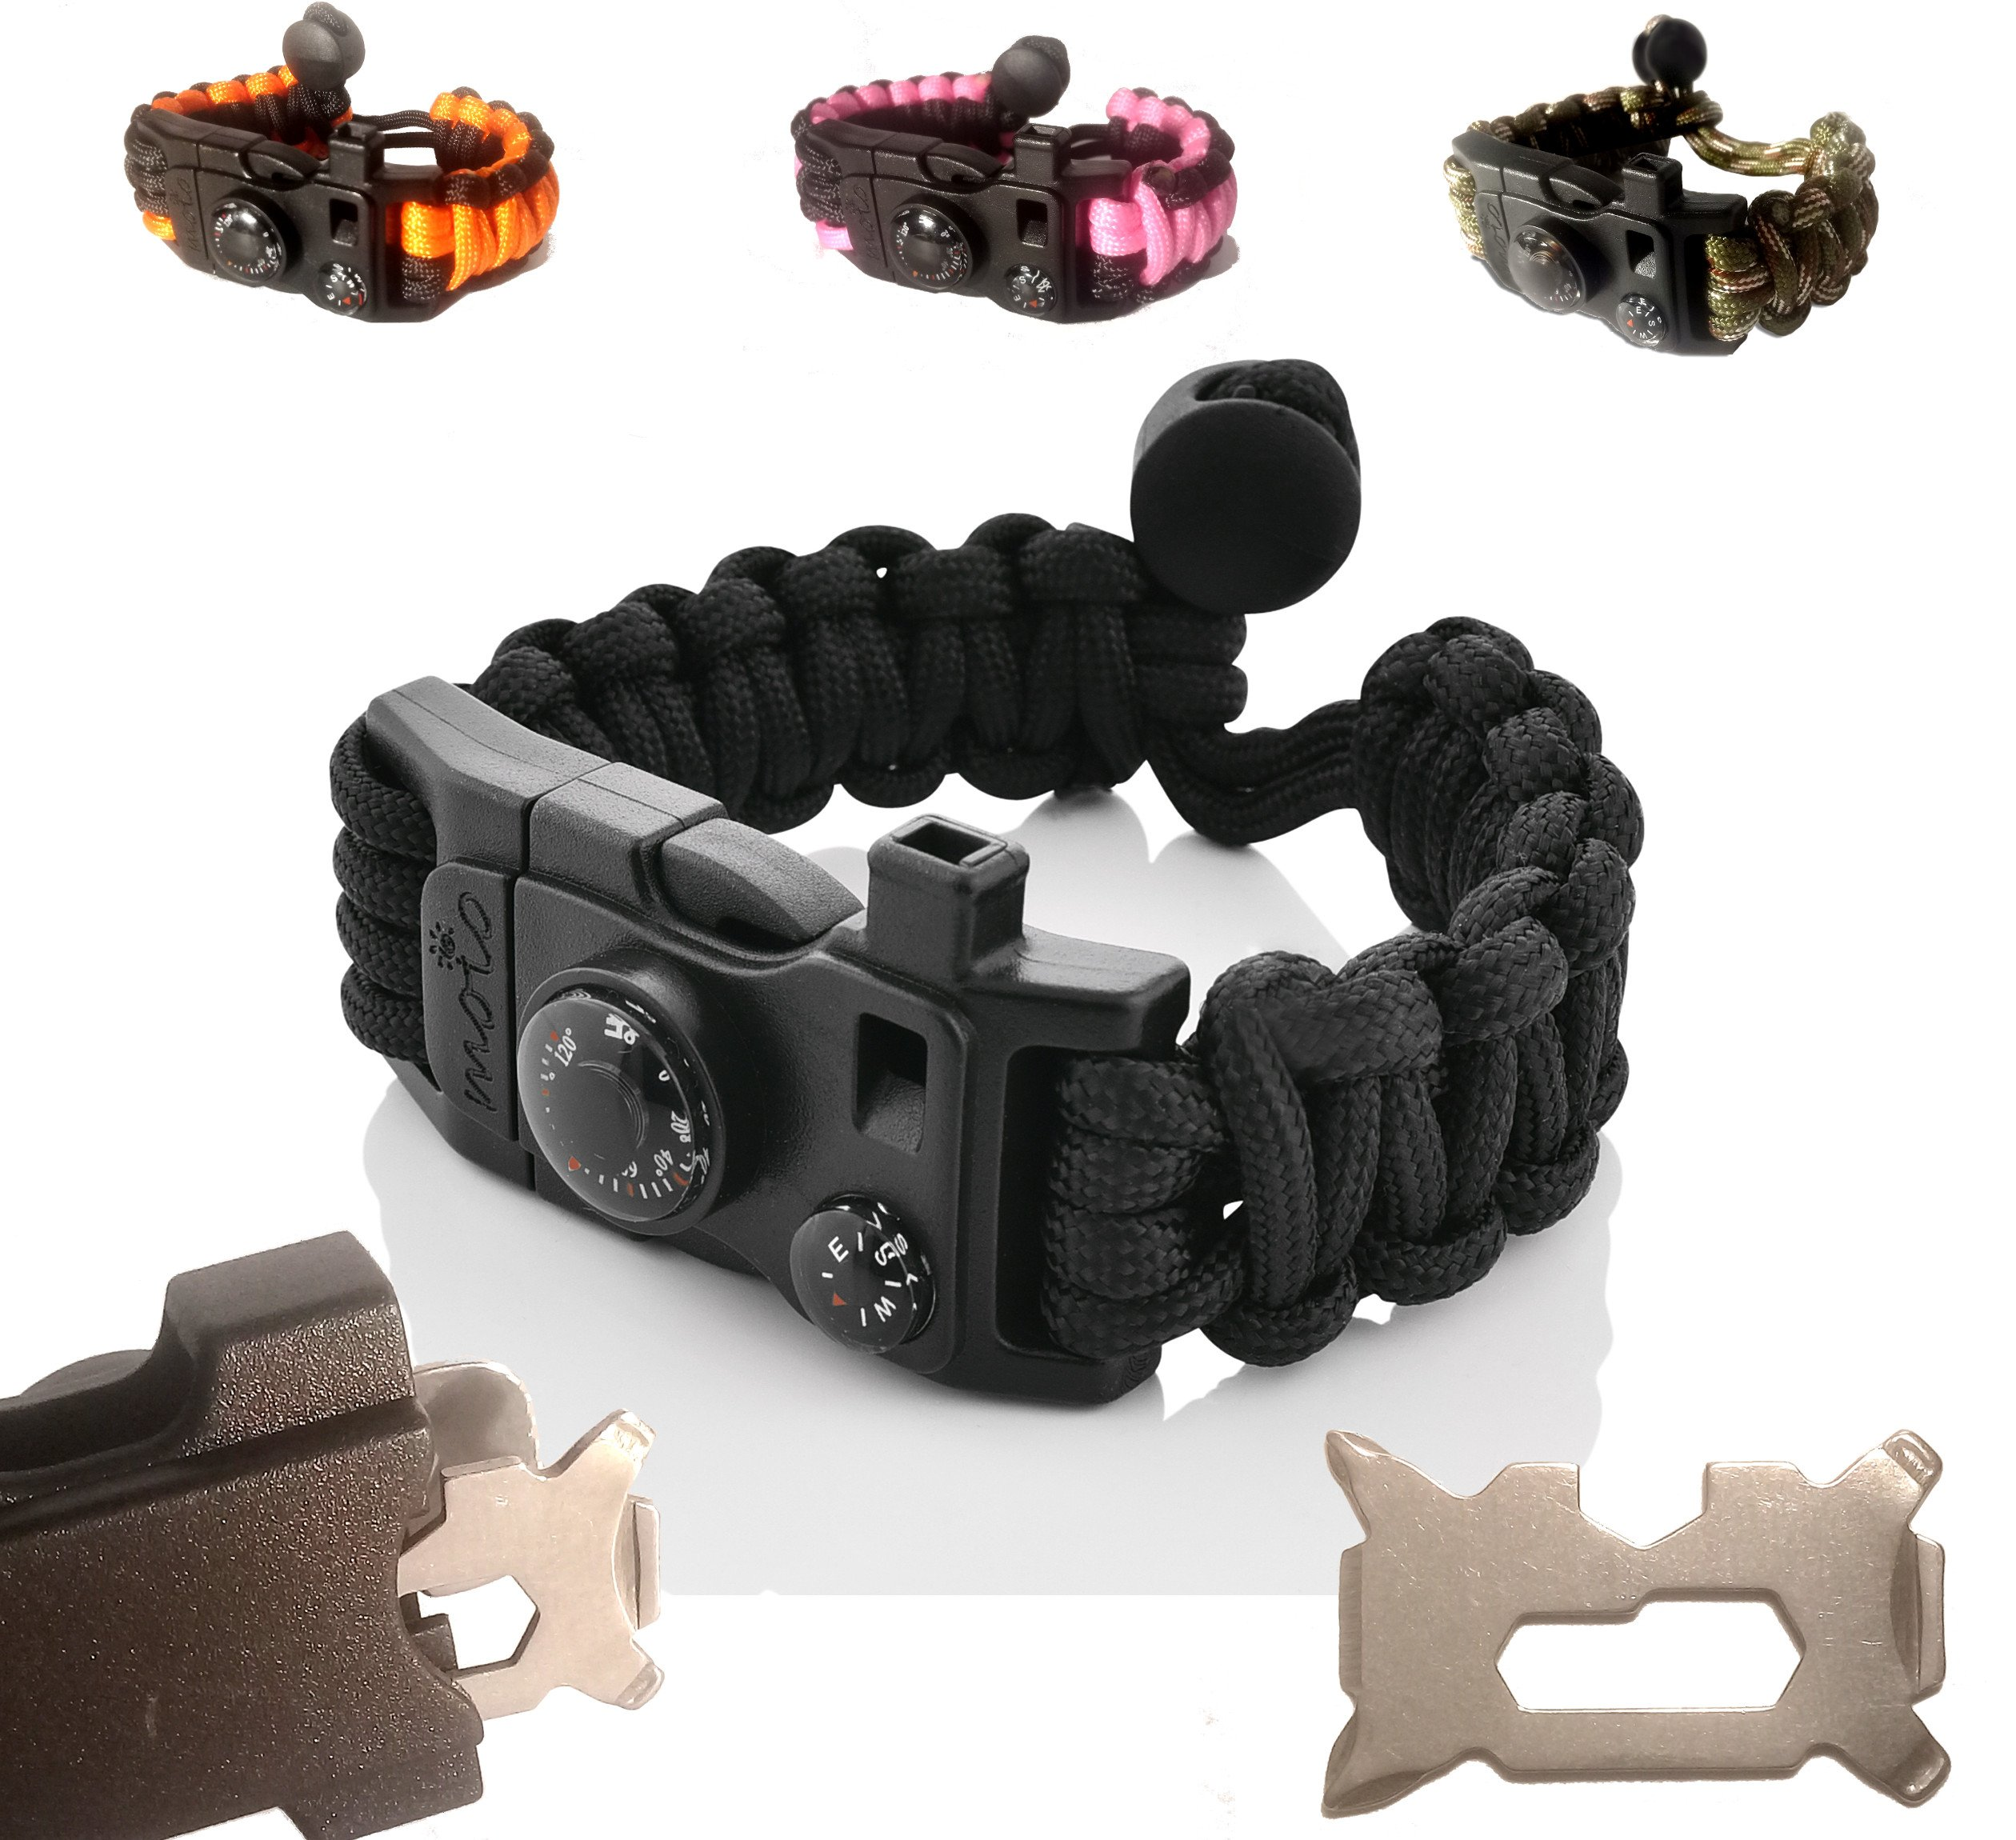 Paracord Bracelet - Survival Bracelet - Emergency Gear Men Women Kid Girl - MINI MULTI TOOL CARD - Scrapper - Whistle - Compass - Flint Fire Starter - Fahrenheit Thermometer - Hiking Camping